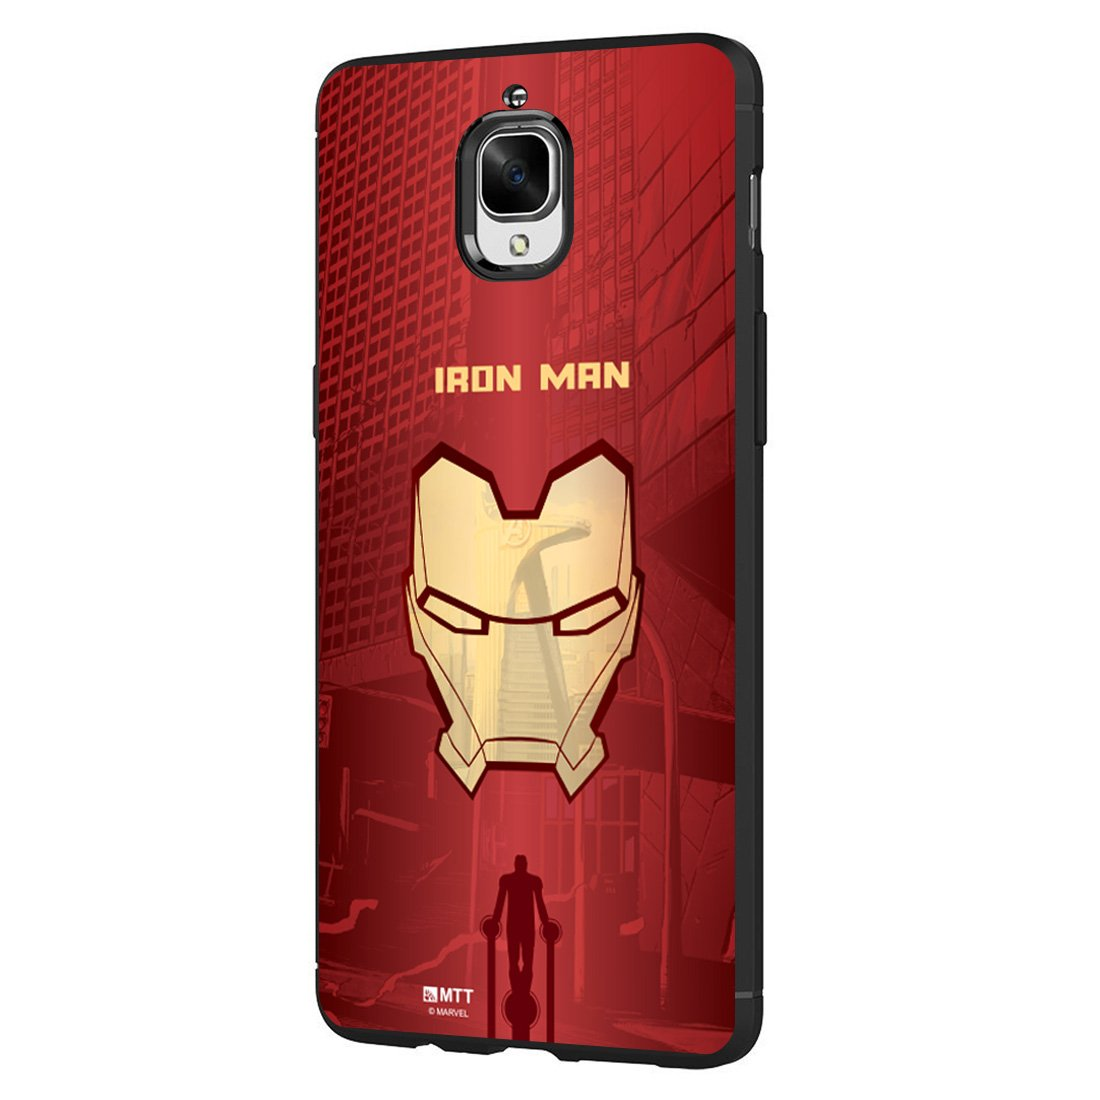 size 40 8acdb c8f39 MTT Marvel Iron Man Officially Licensed Tough Armor Back Case Cover for  OnePlus 3T & 3 (Design64)